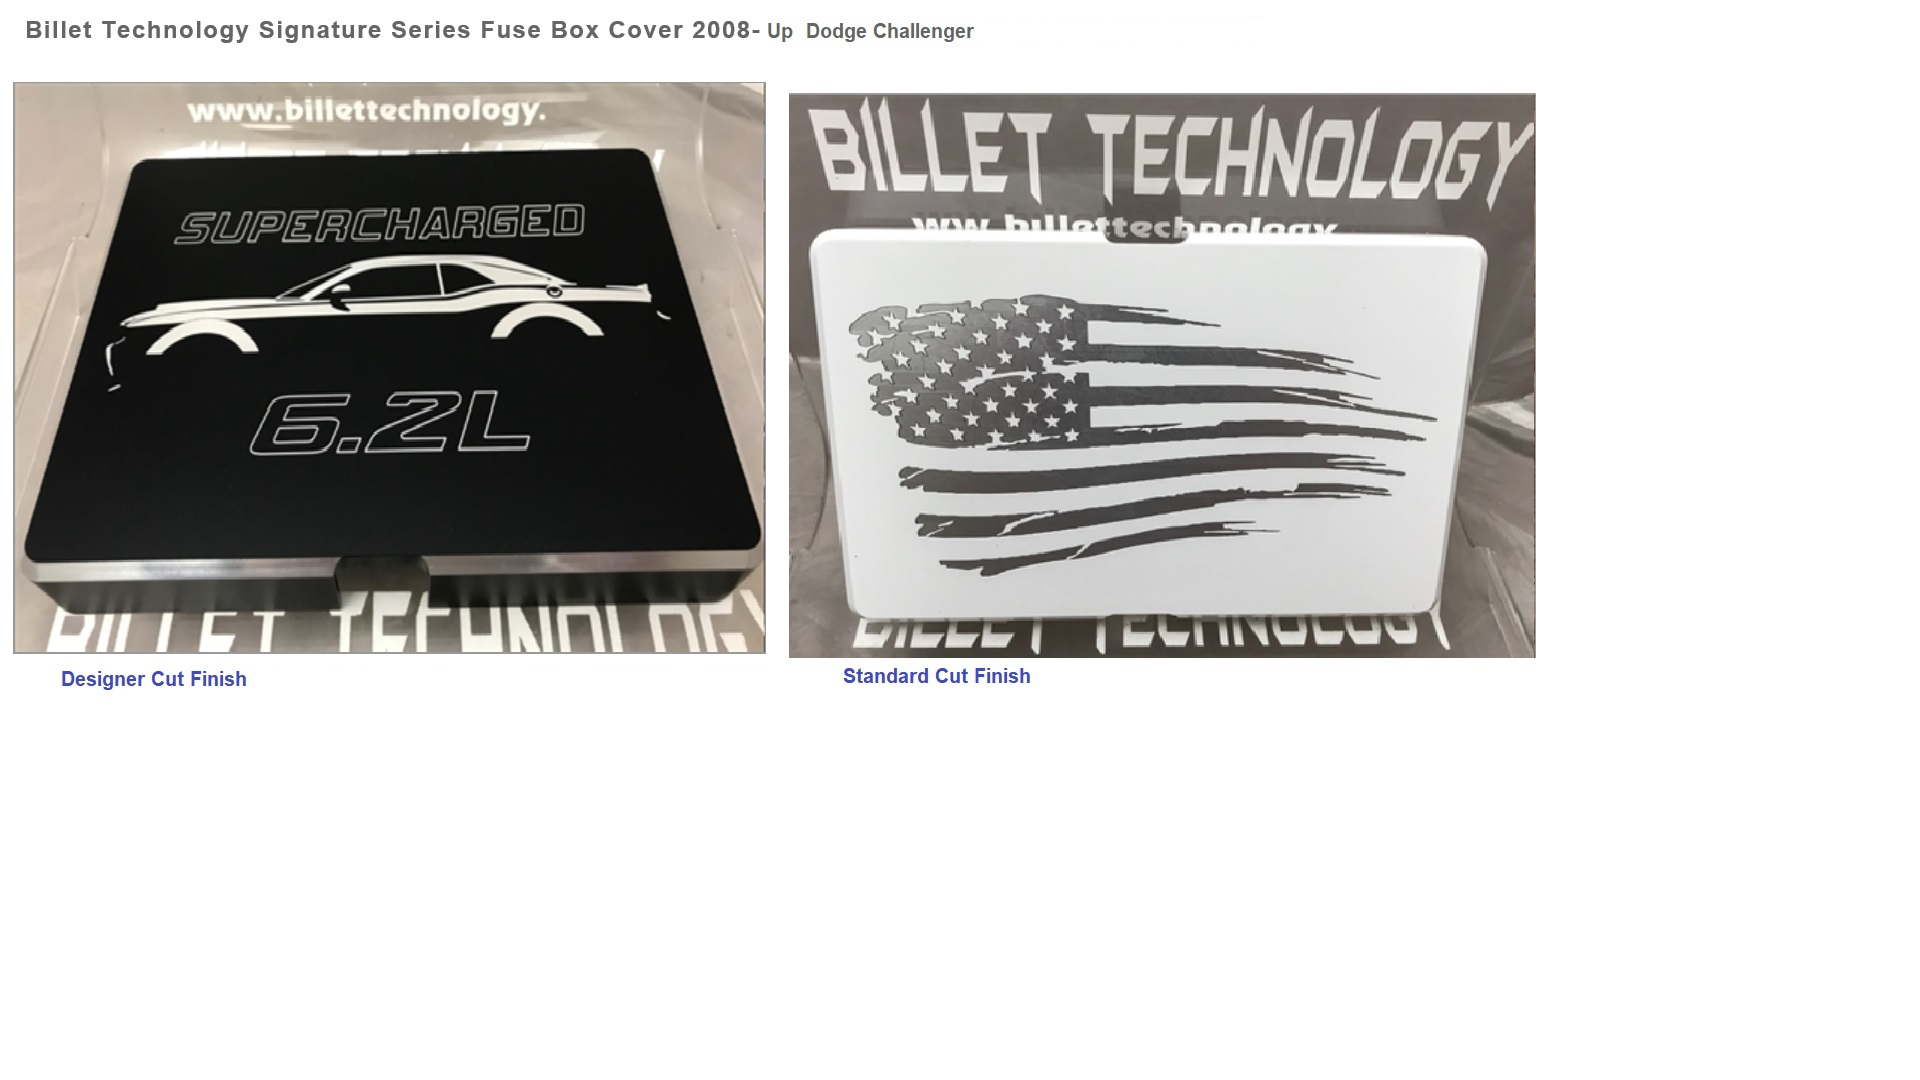 hight resolution of  billet technology fuse box cover 08 14 dodge challenger